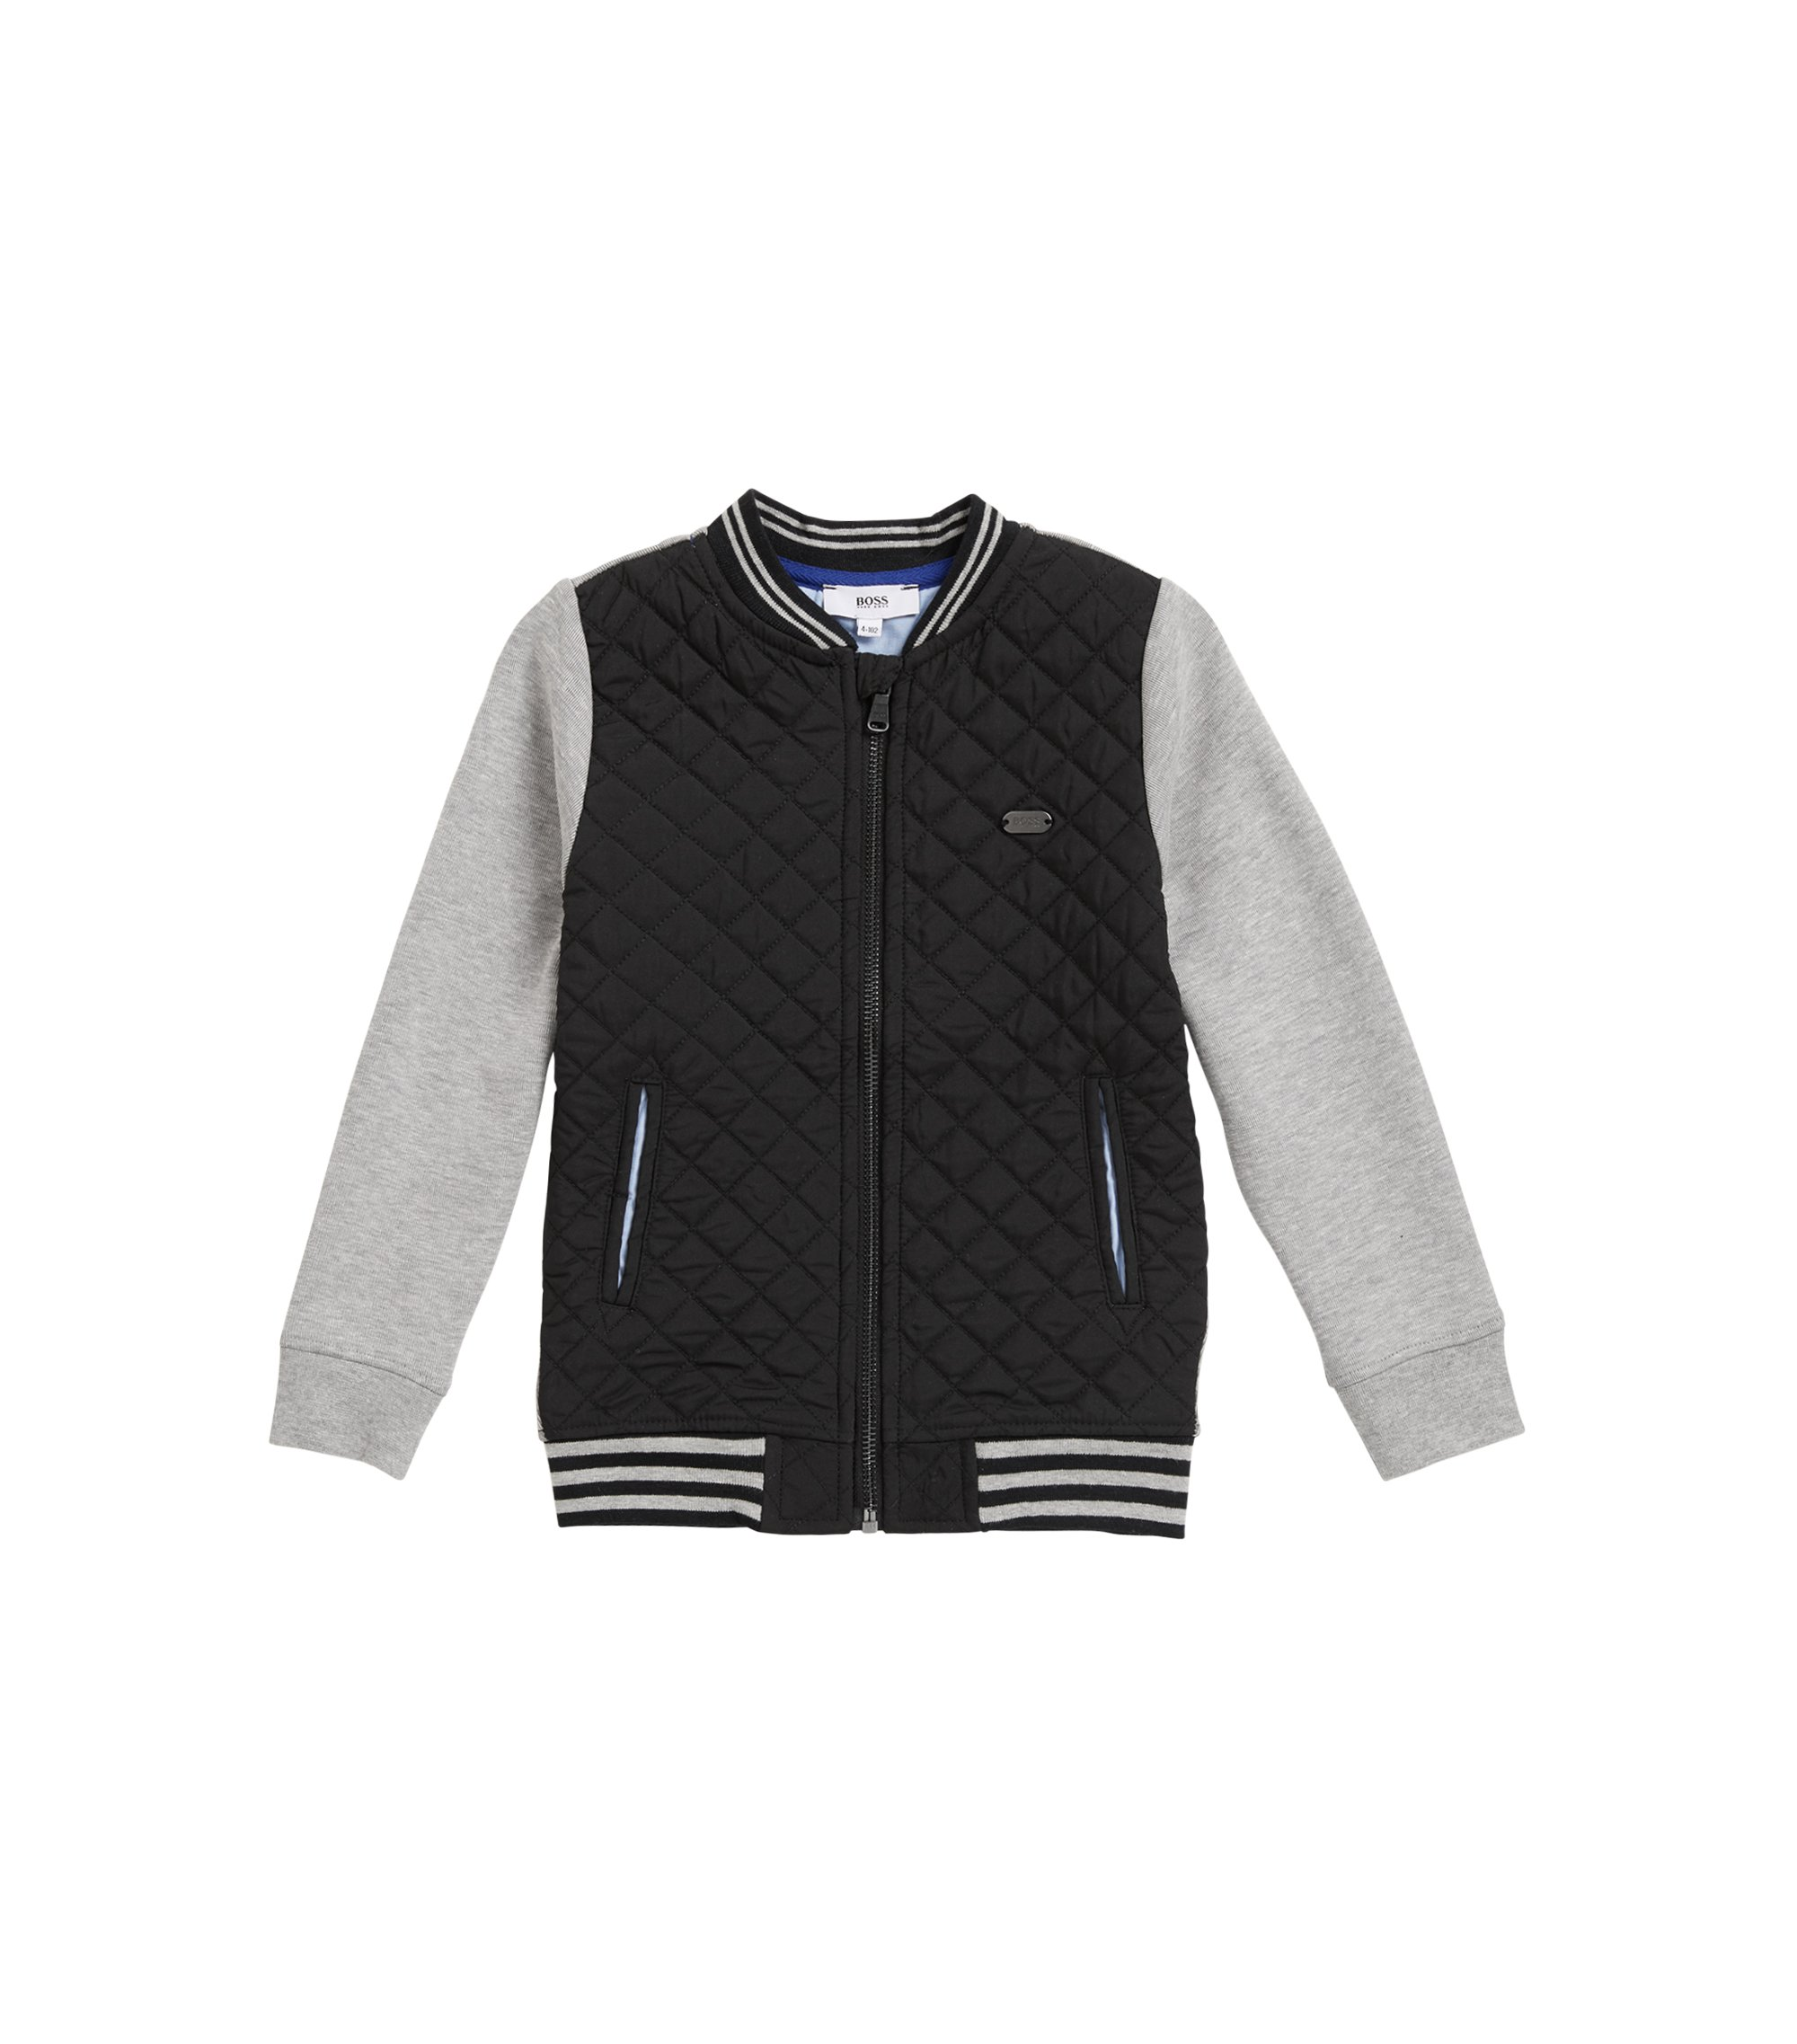 Kids' quilted twill and double-jersey jacket, Black